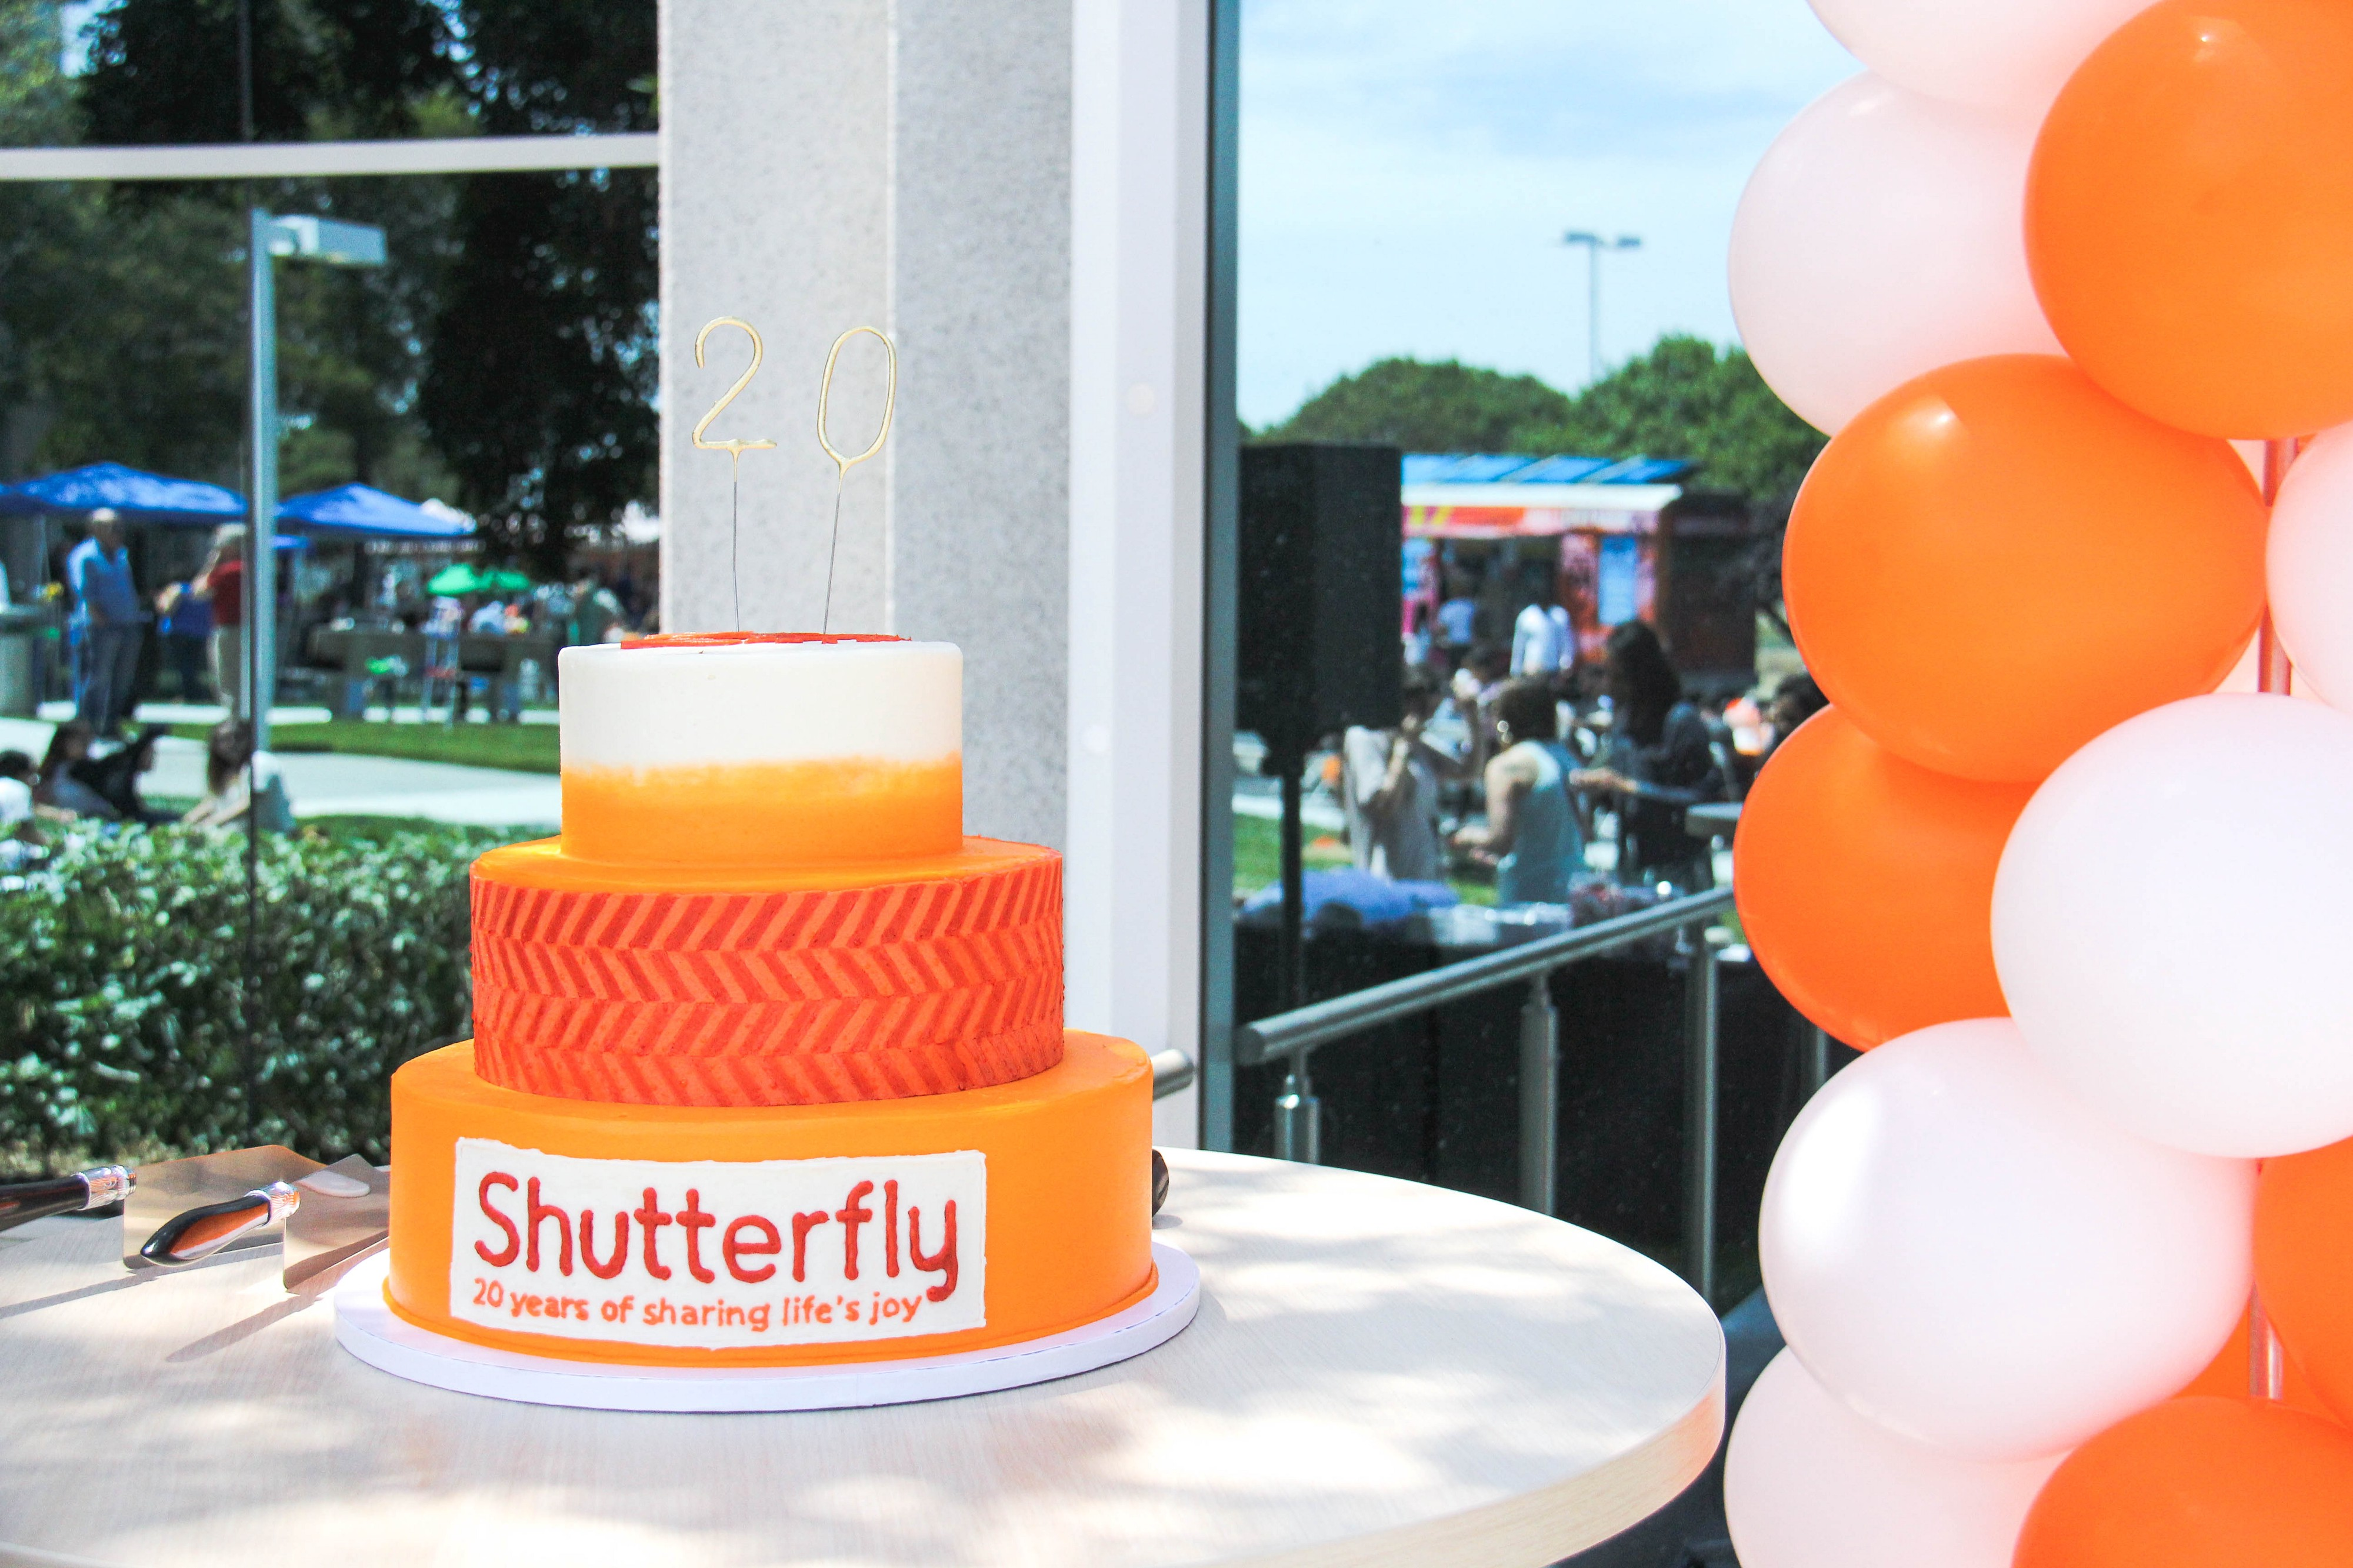 What I Learned From My Ux Design Internship At Shutterfly By Yejun Wu Ux Collective